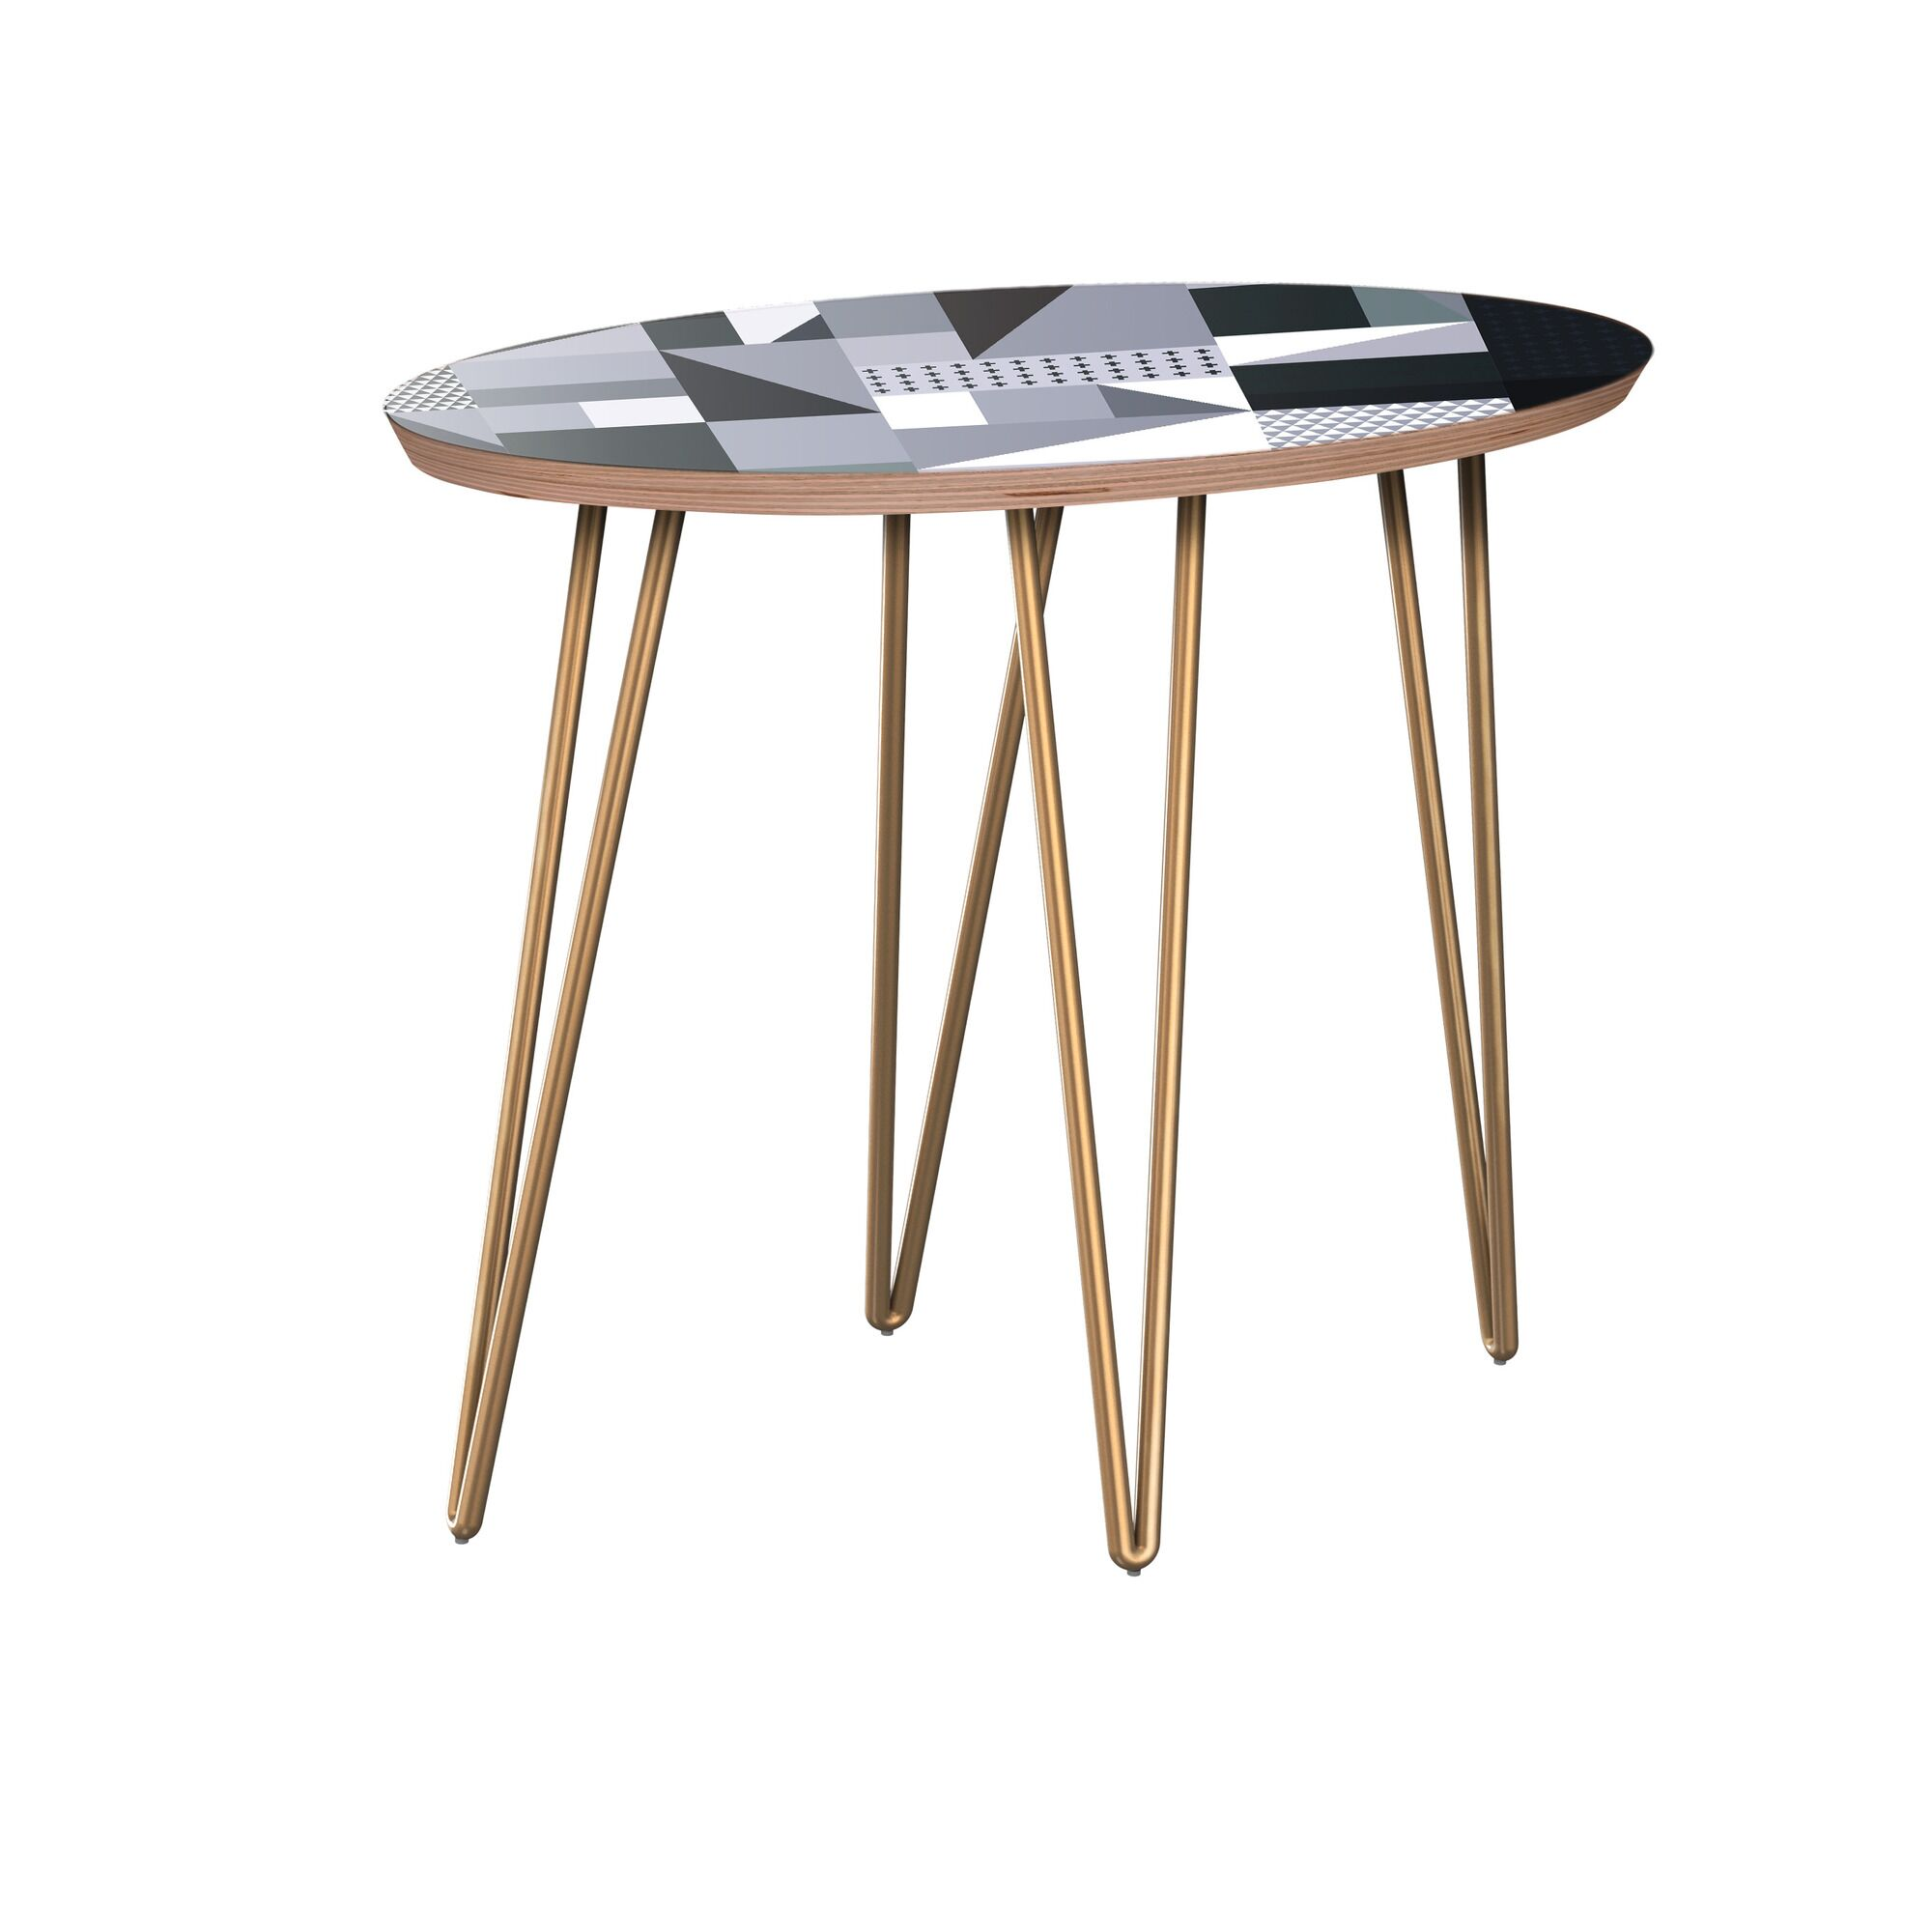 Hudson Yards End Table Table Base Color: Brass, Table Top Color: Walnut